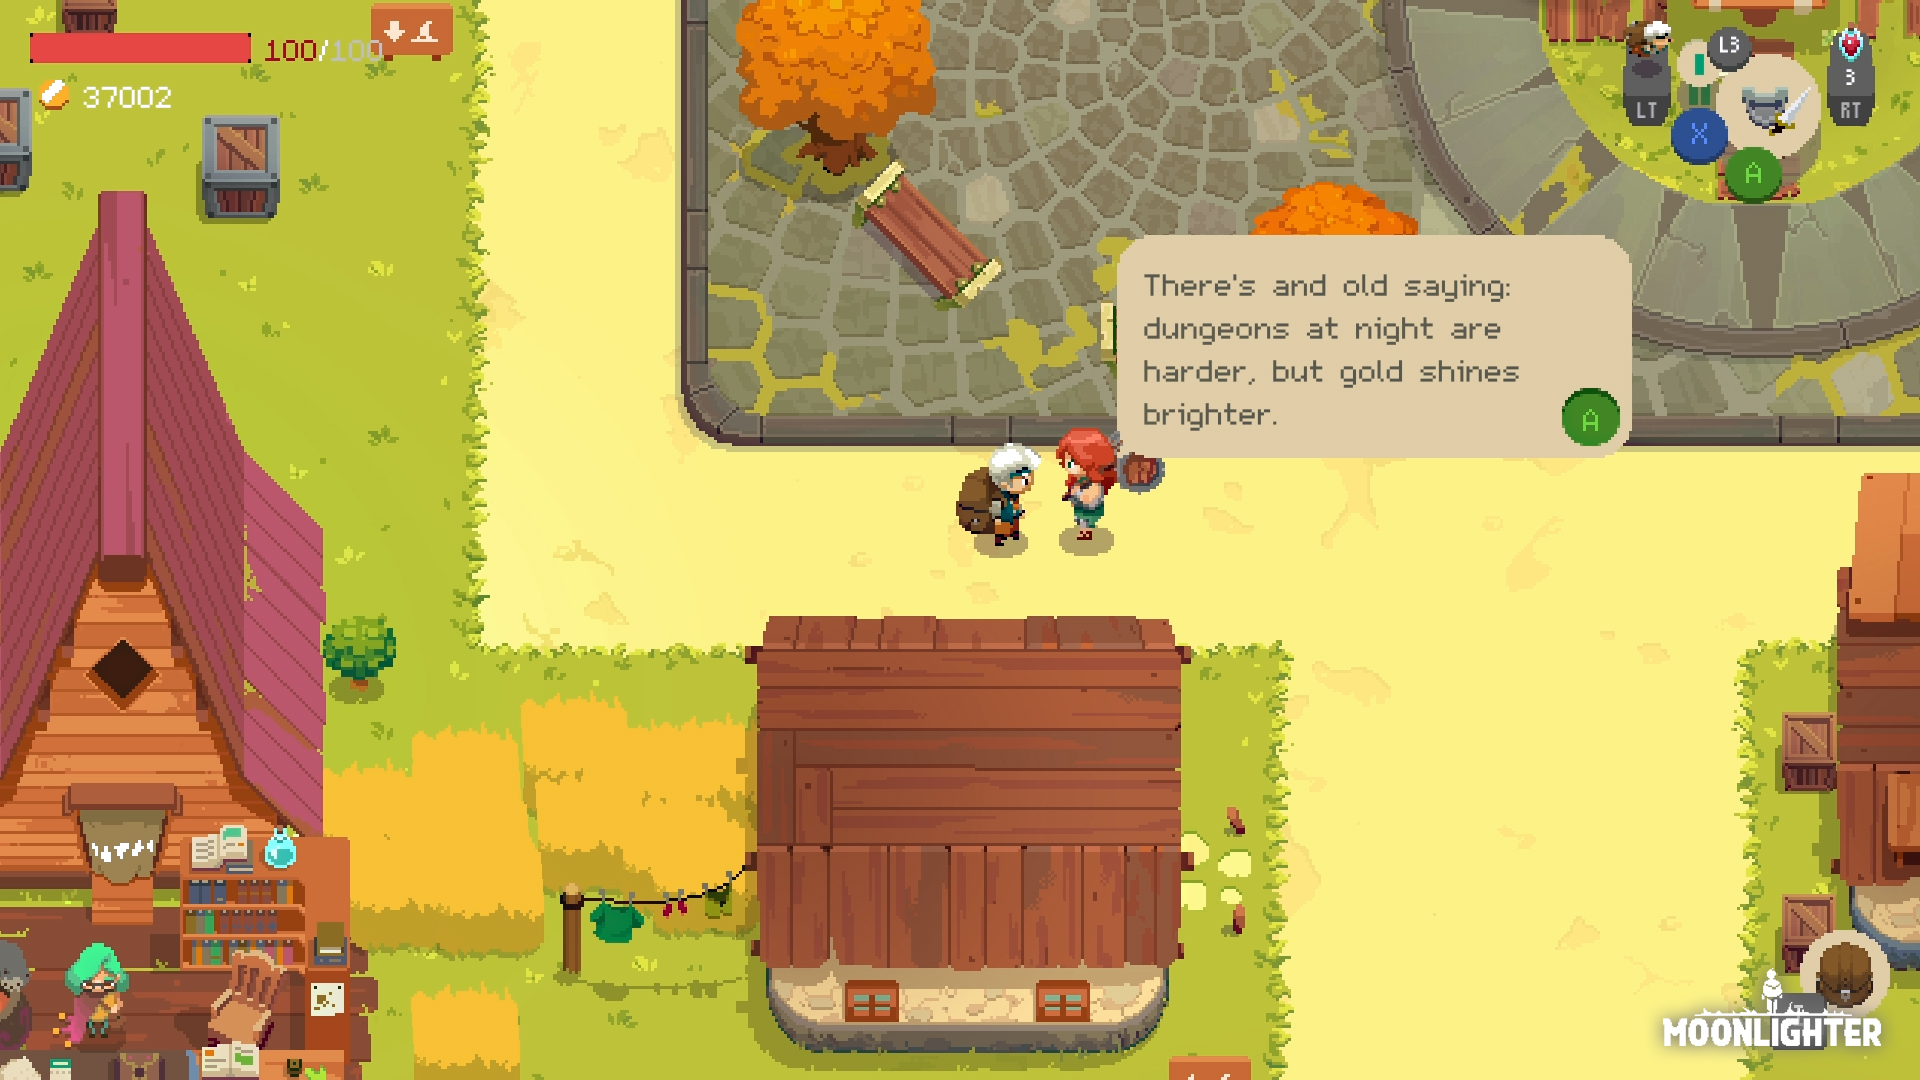 Moonlighter review - town